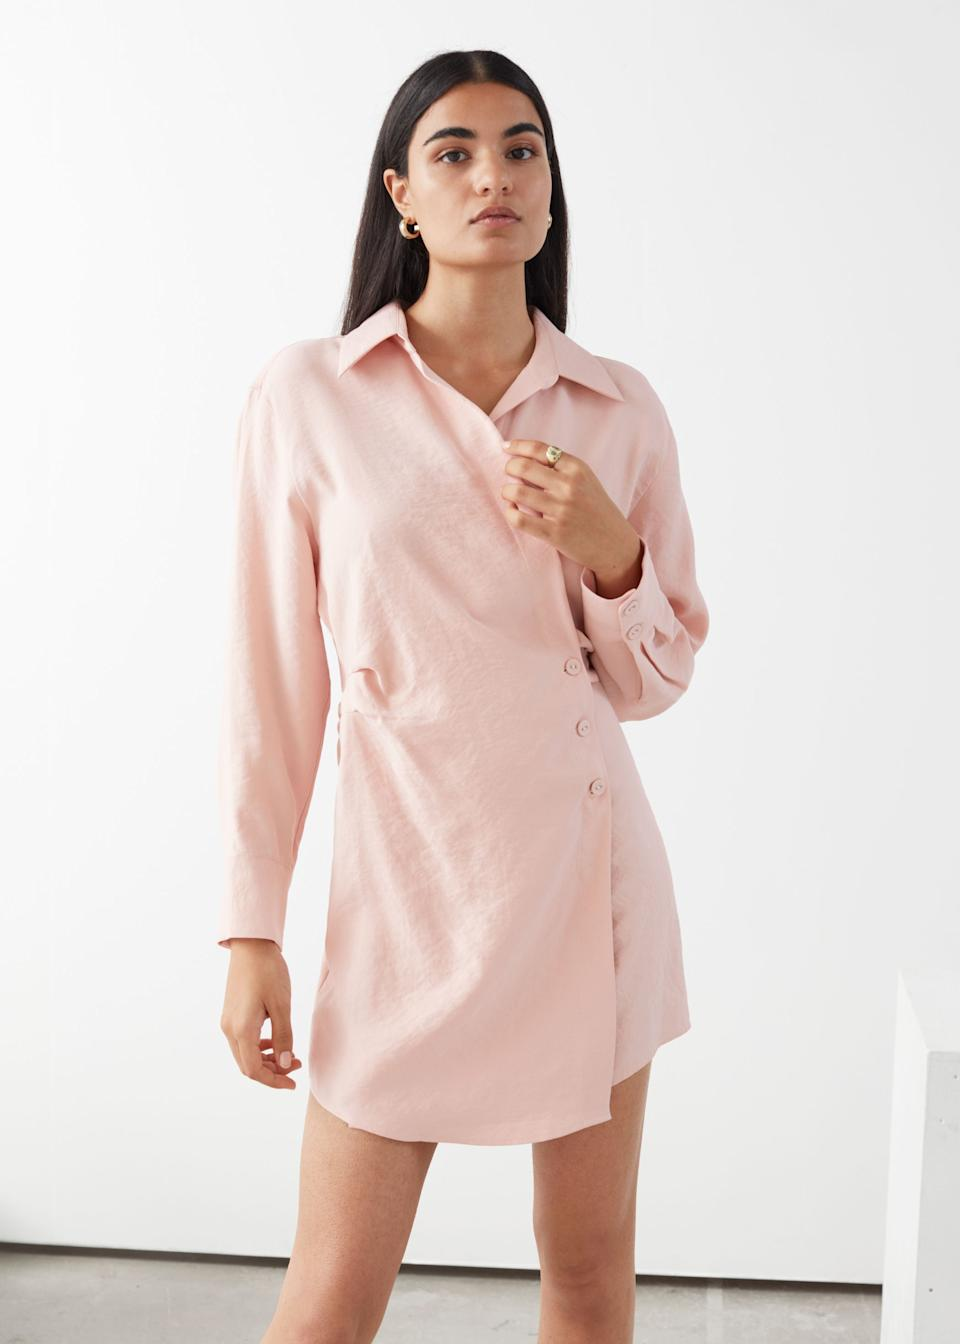 "<br><br><strong>& Other Stories</strong> Asymmetric Mini Shirt Dress, $, available at <a href=""https://go.skimresources.com/?id=30283X879131&url=https%3A%2F%2Fwww.stories.com%2Fen_usd%2Fclothing%2Fdresses%2Fmini-dresses%2Fproduct.asymmetric-mini-shirt-dress-orange.0774360015.html"" rel=""nofollow noopener"" target=""_blank"" data-ylk=""slk:& Other Stories"" class=""link rapid-noclick-resp"">& Other Stories</a>"